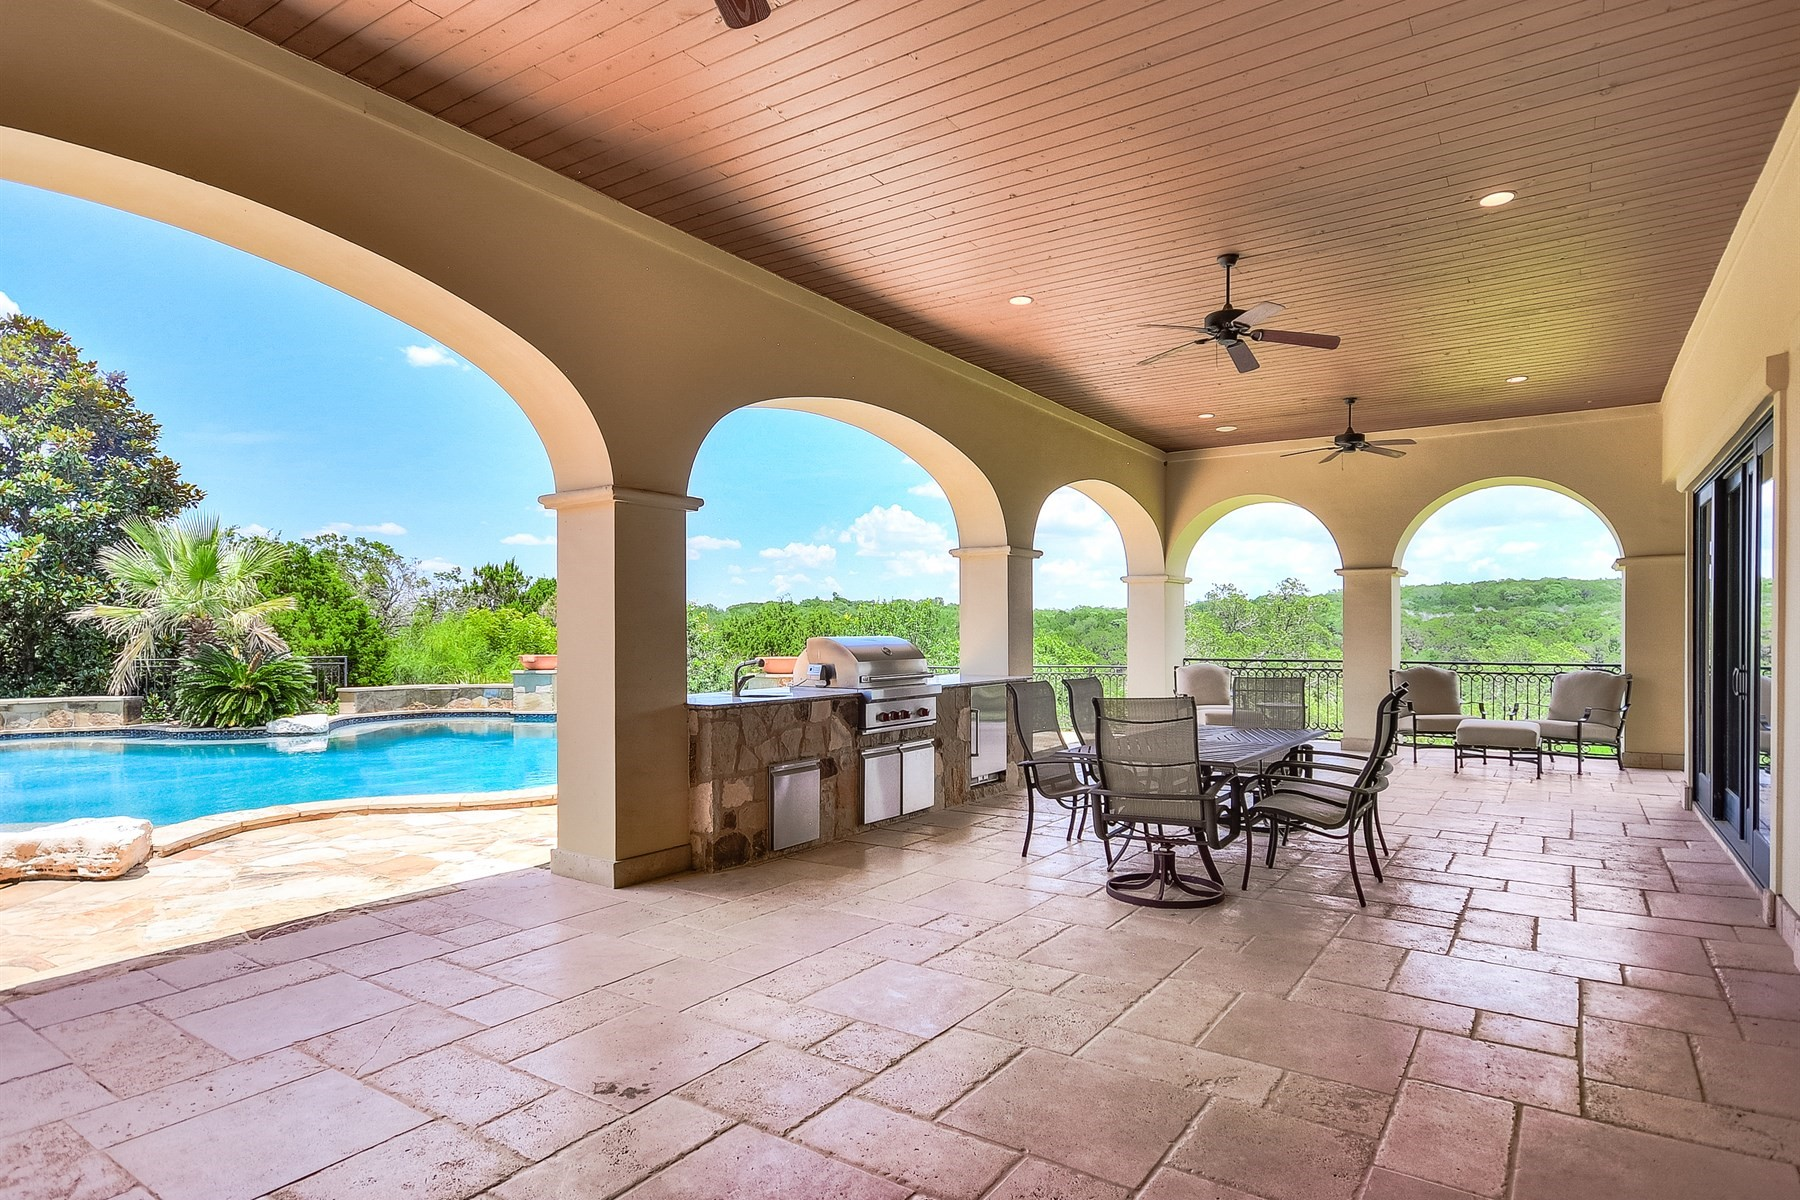 Additional photo for property listing at 9113 Camelback Dr 9113 Camelback Dr Austin, Texas 78733 Estados Unidos